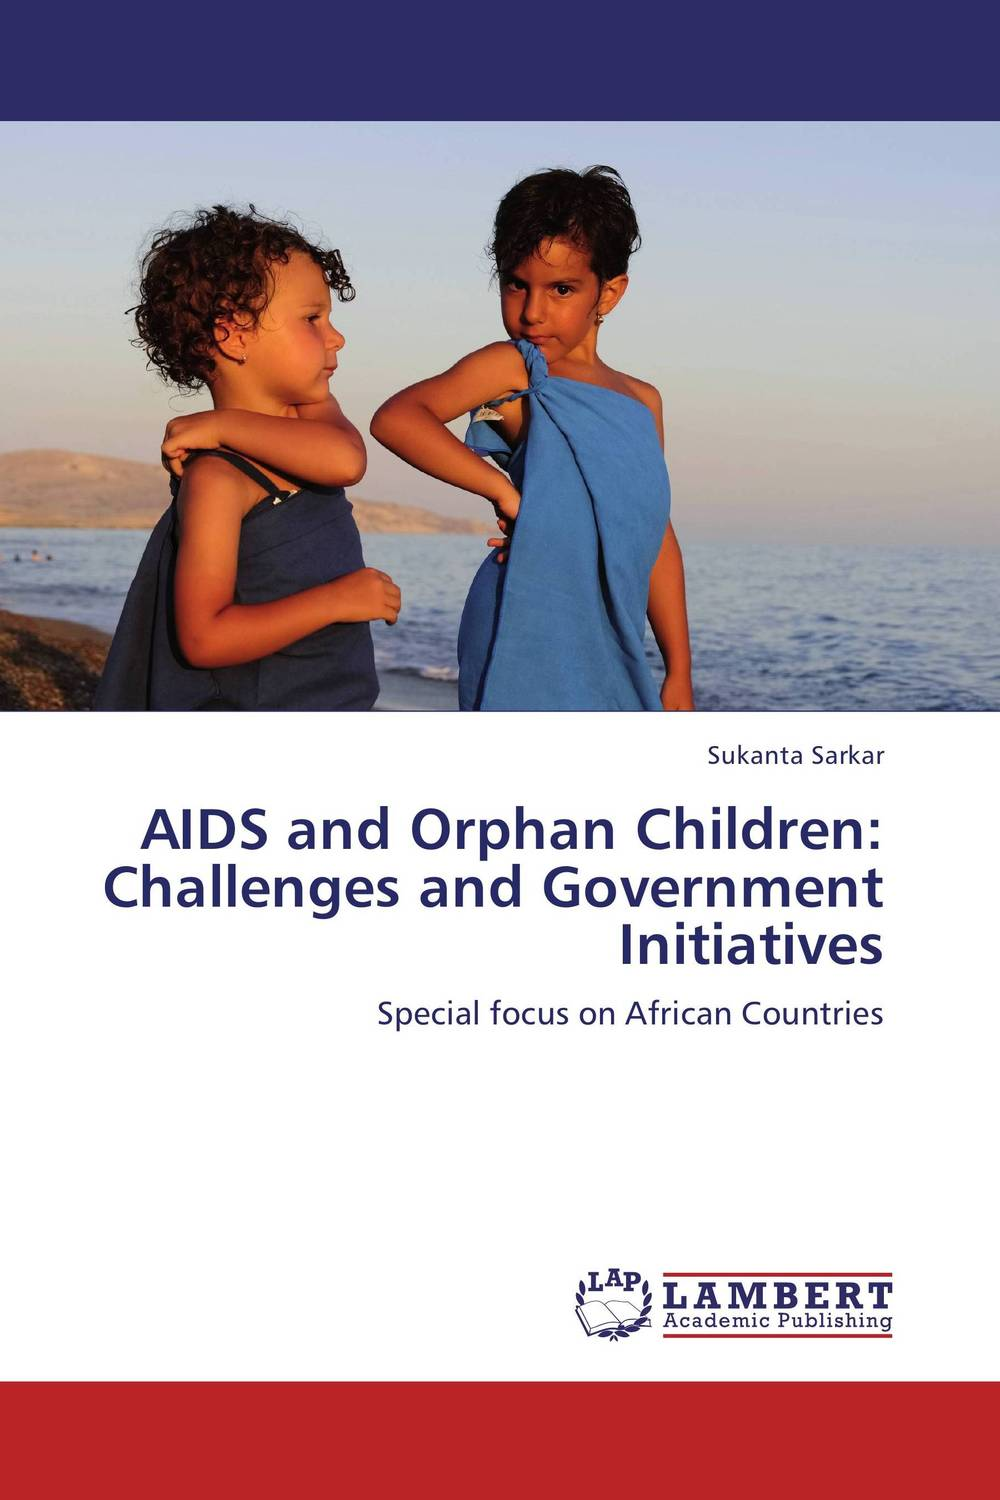 AIDS and Orphan Children: Challenges and Government Initiatives psychosomatic symptoms in children and adolescents